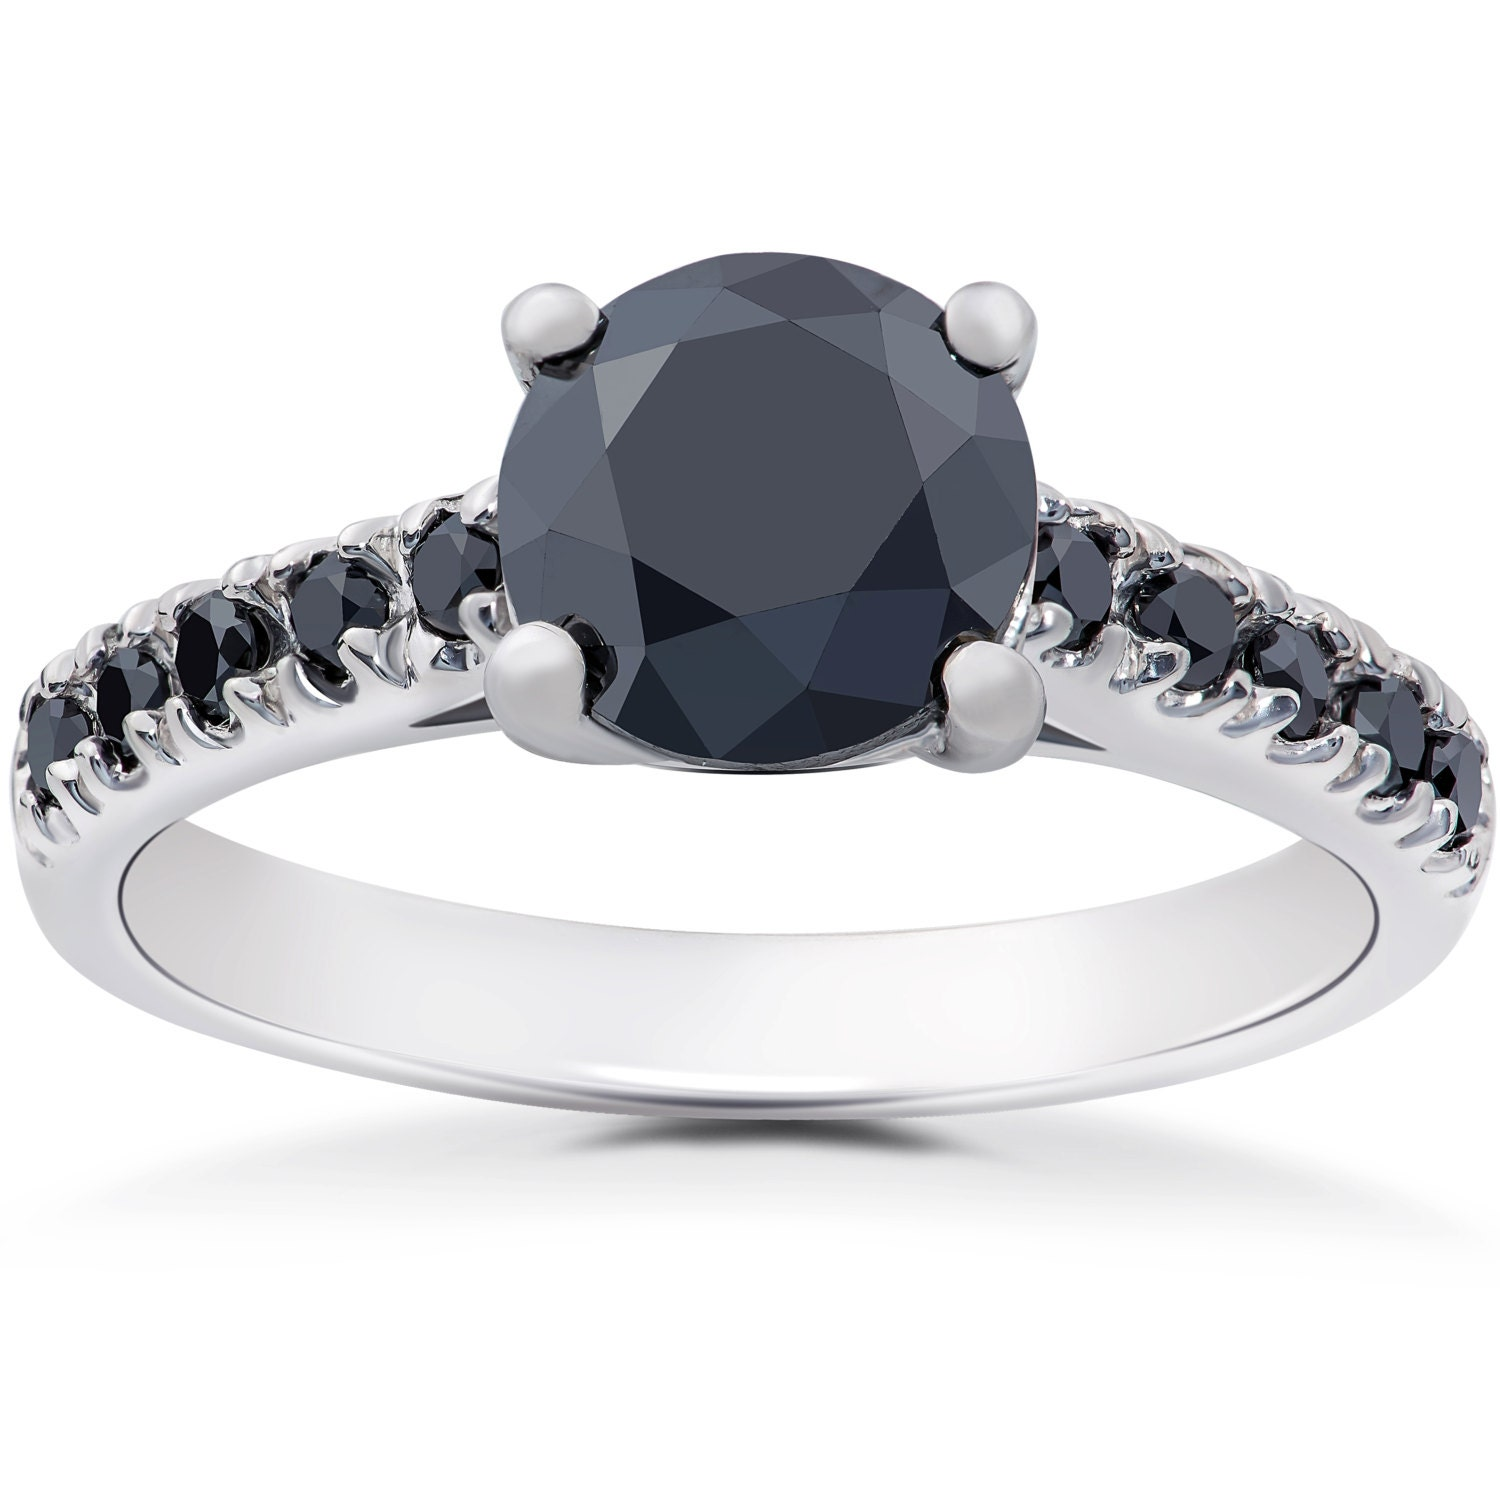 Black Diamond Engagement Ring Black Diamond Ring Diamond